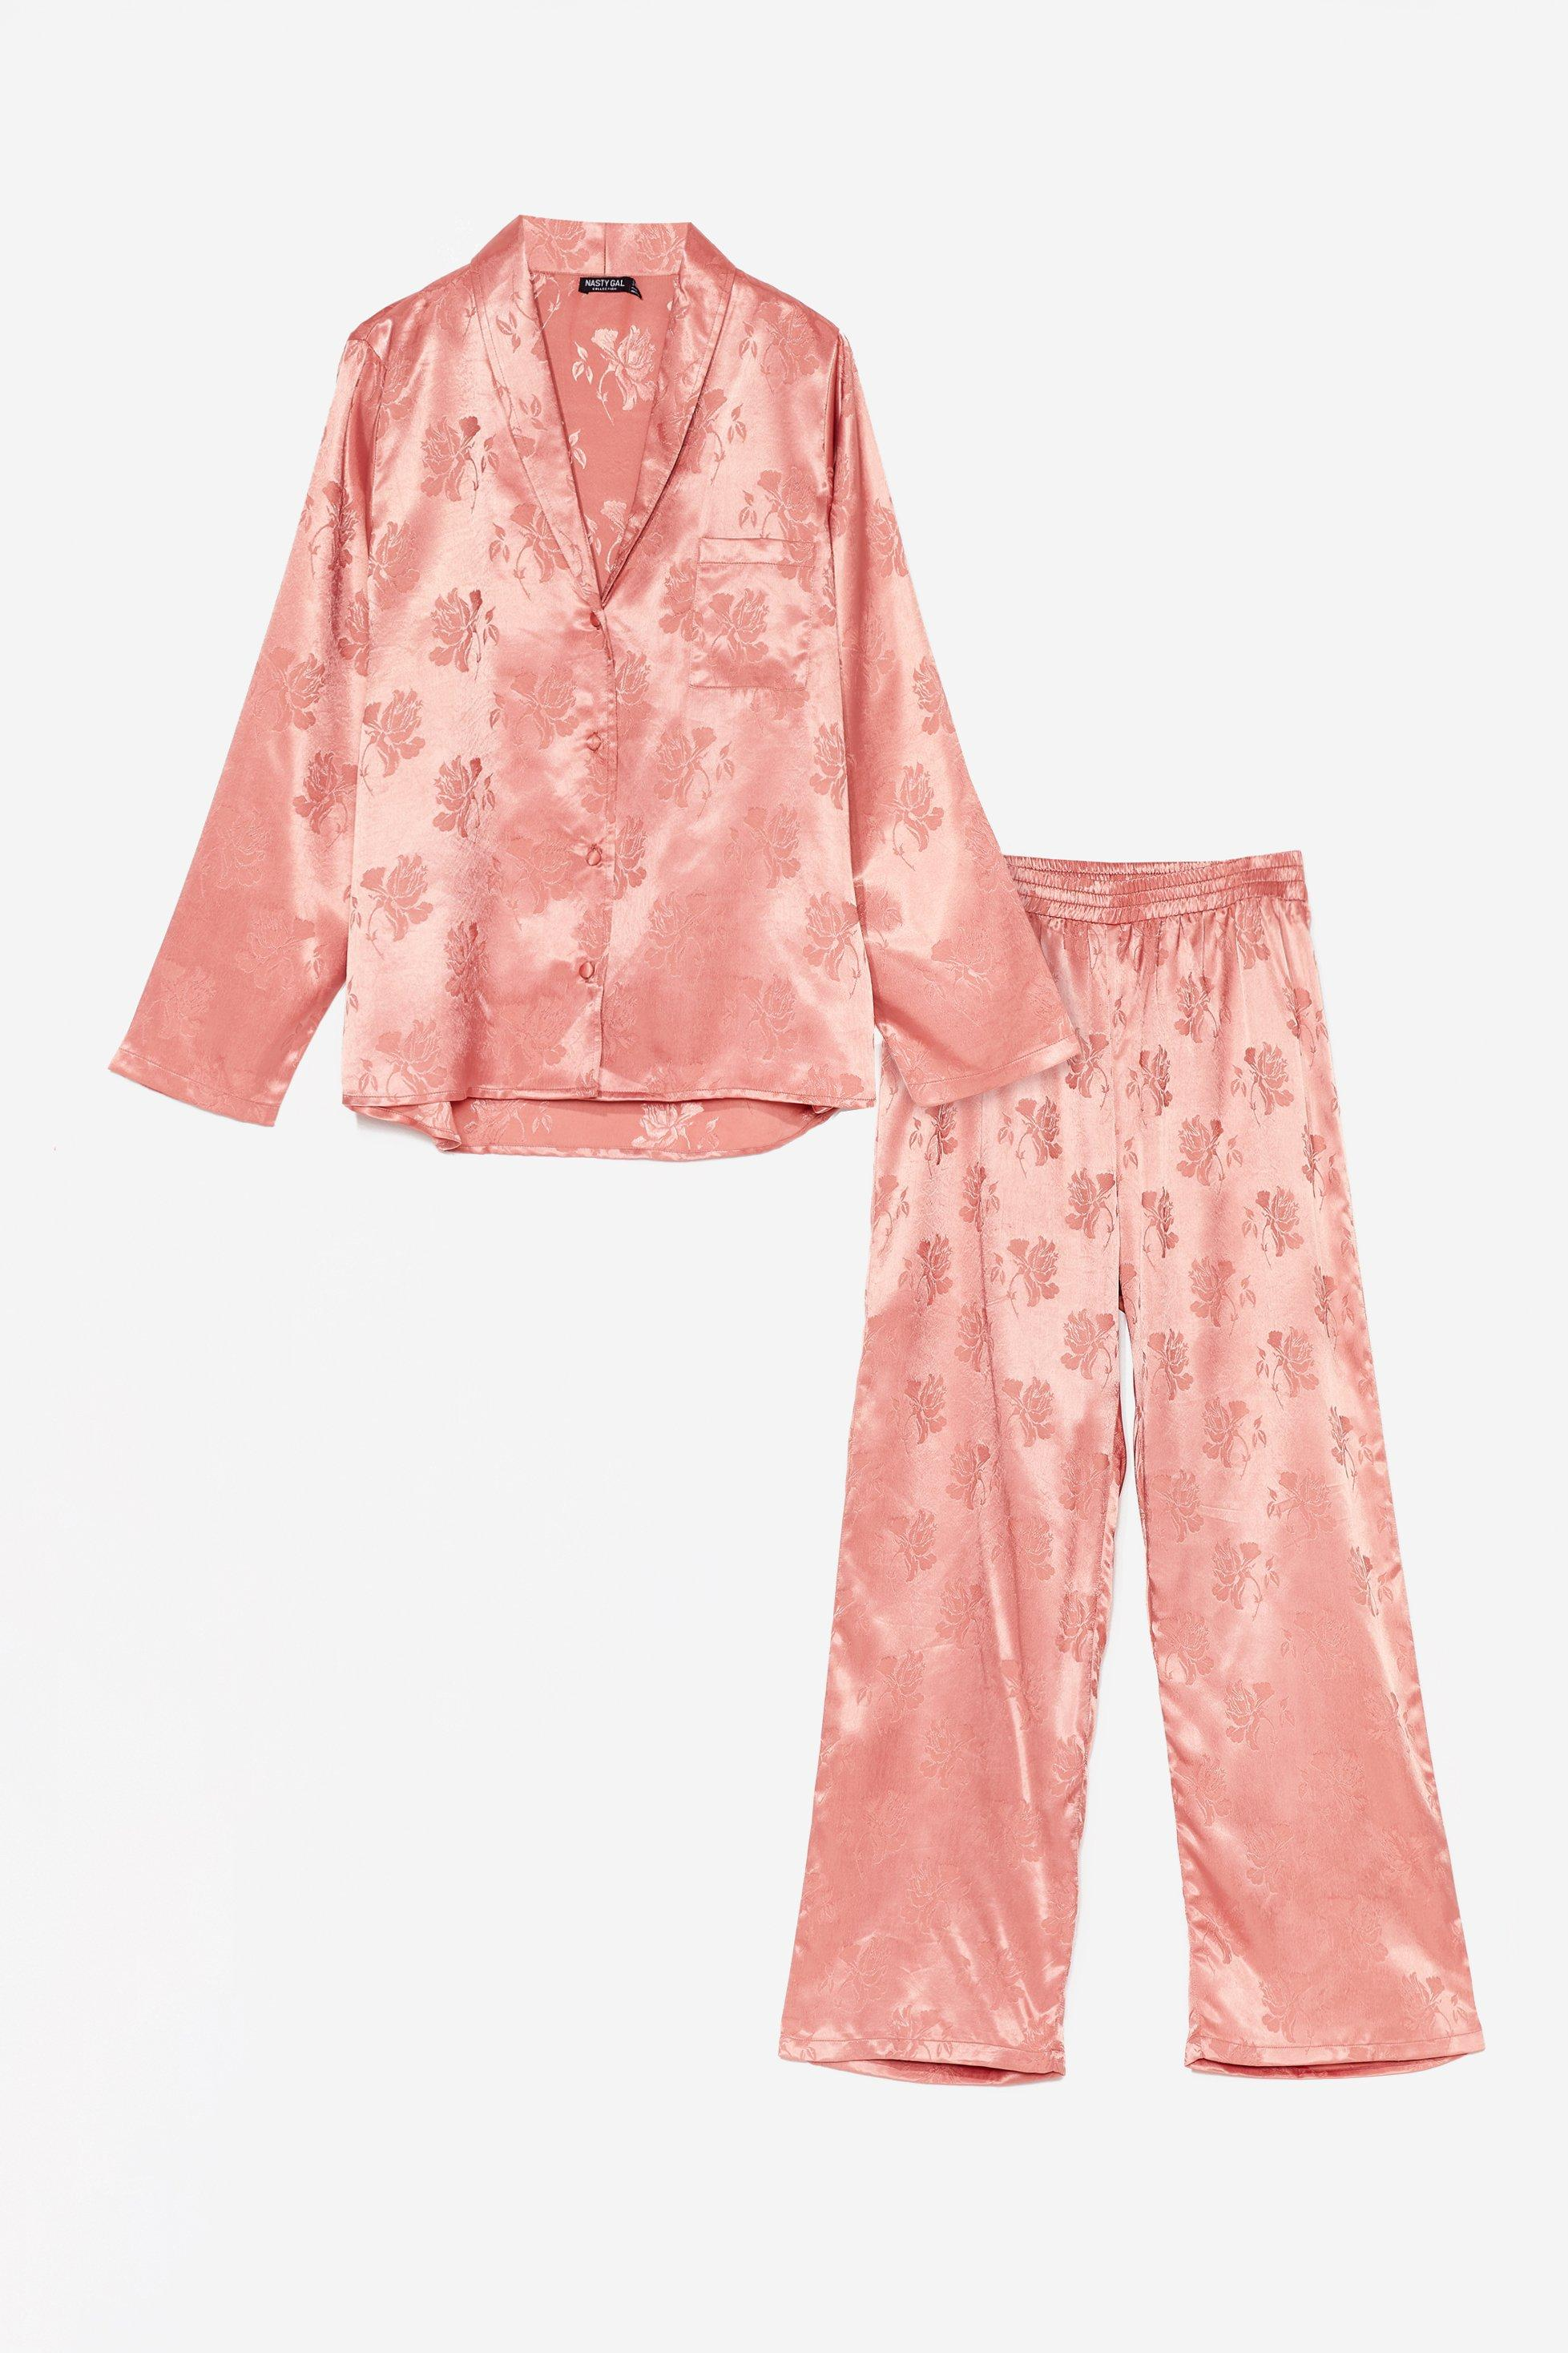 Plus Size Floral Satin Shirt + Trouser PJ Set 6